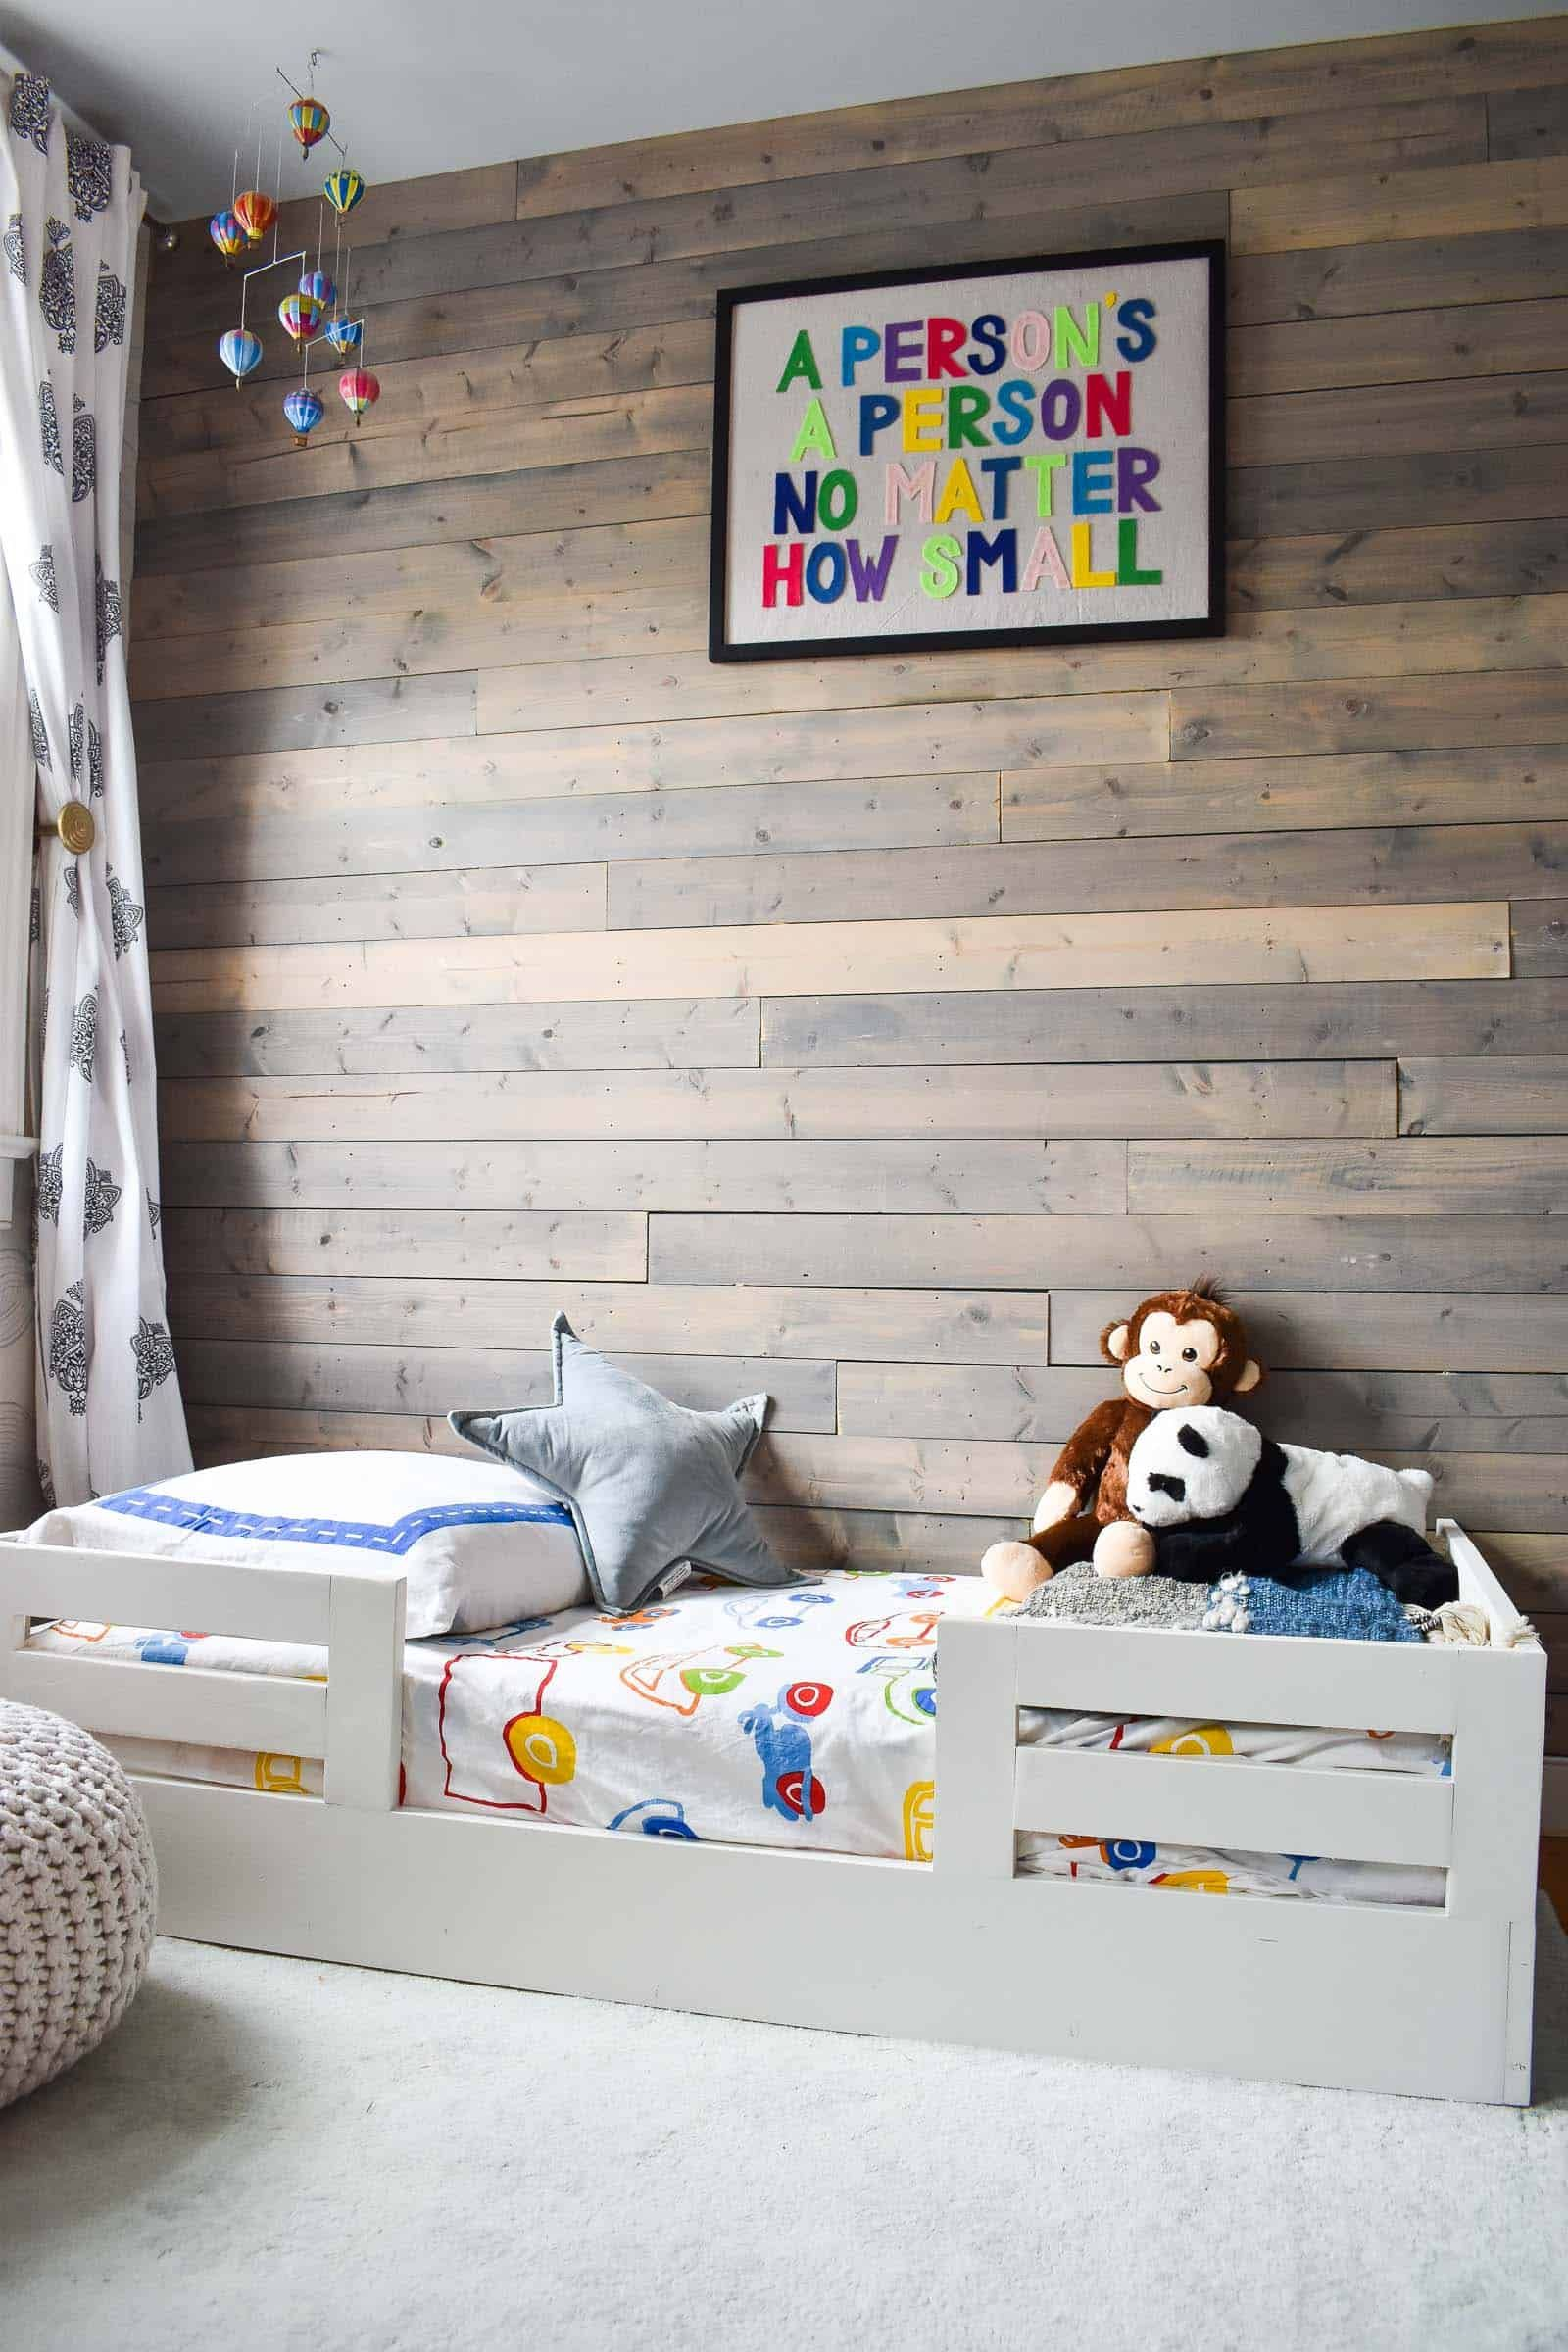 How to Build a Toddler Bed with Bed Rails – At Charlotte's House